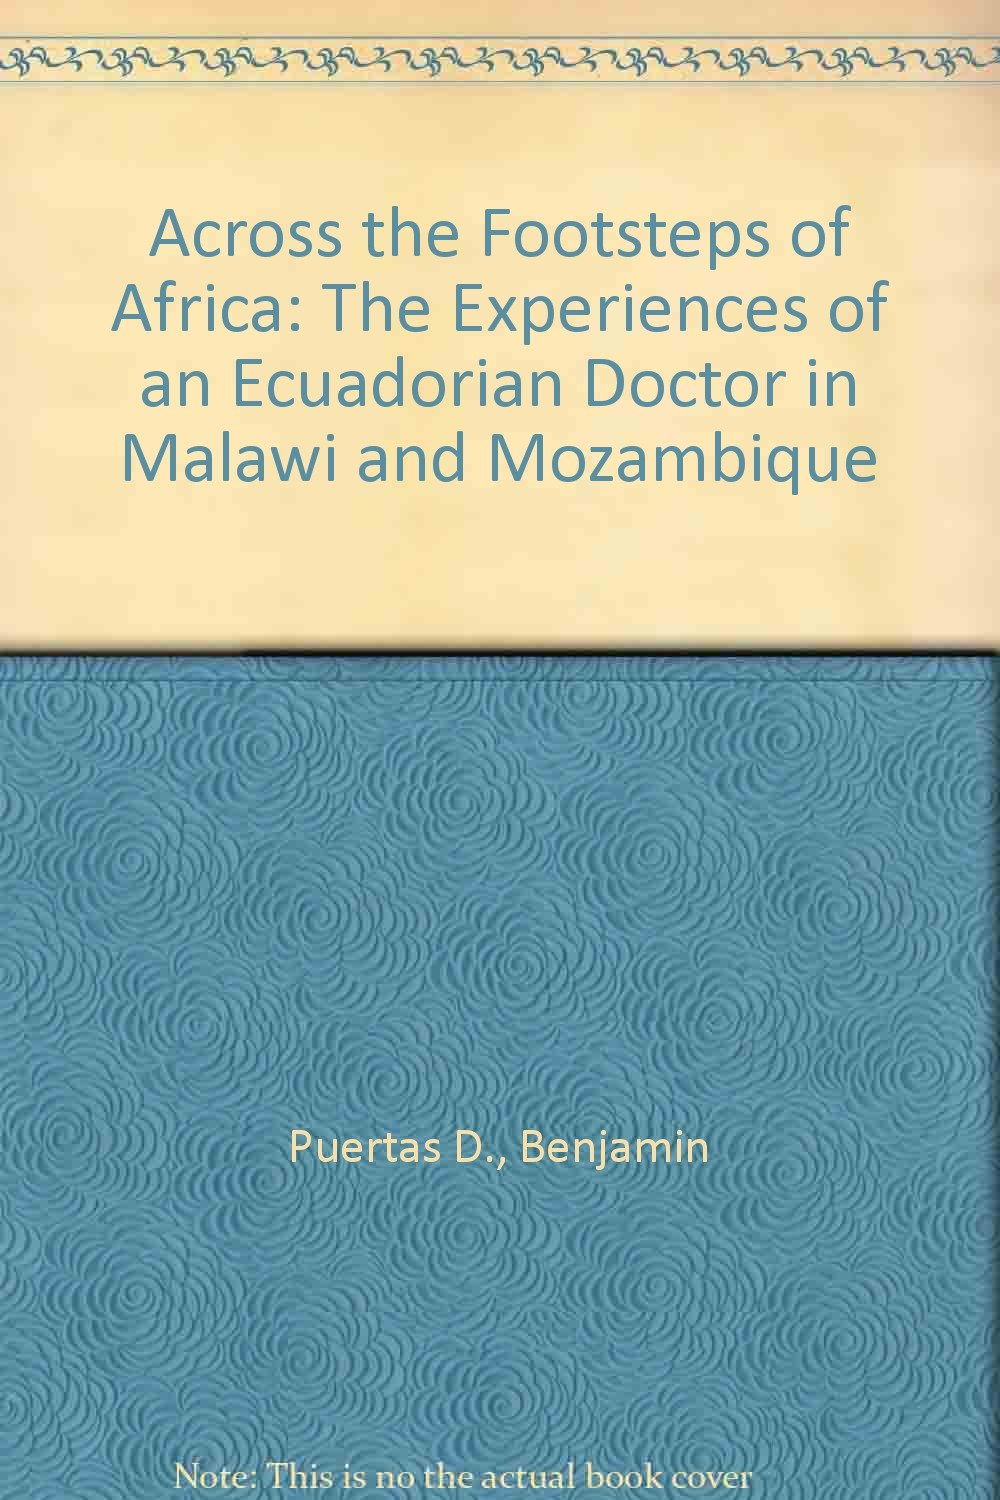 Across the Footsteps of Africa: The Experiences of an Ecuadorian Doctor in Malawi and Mozambique